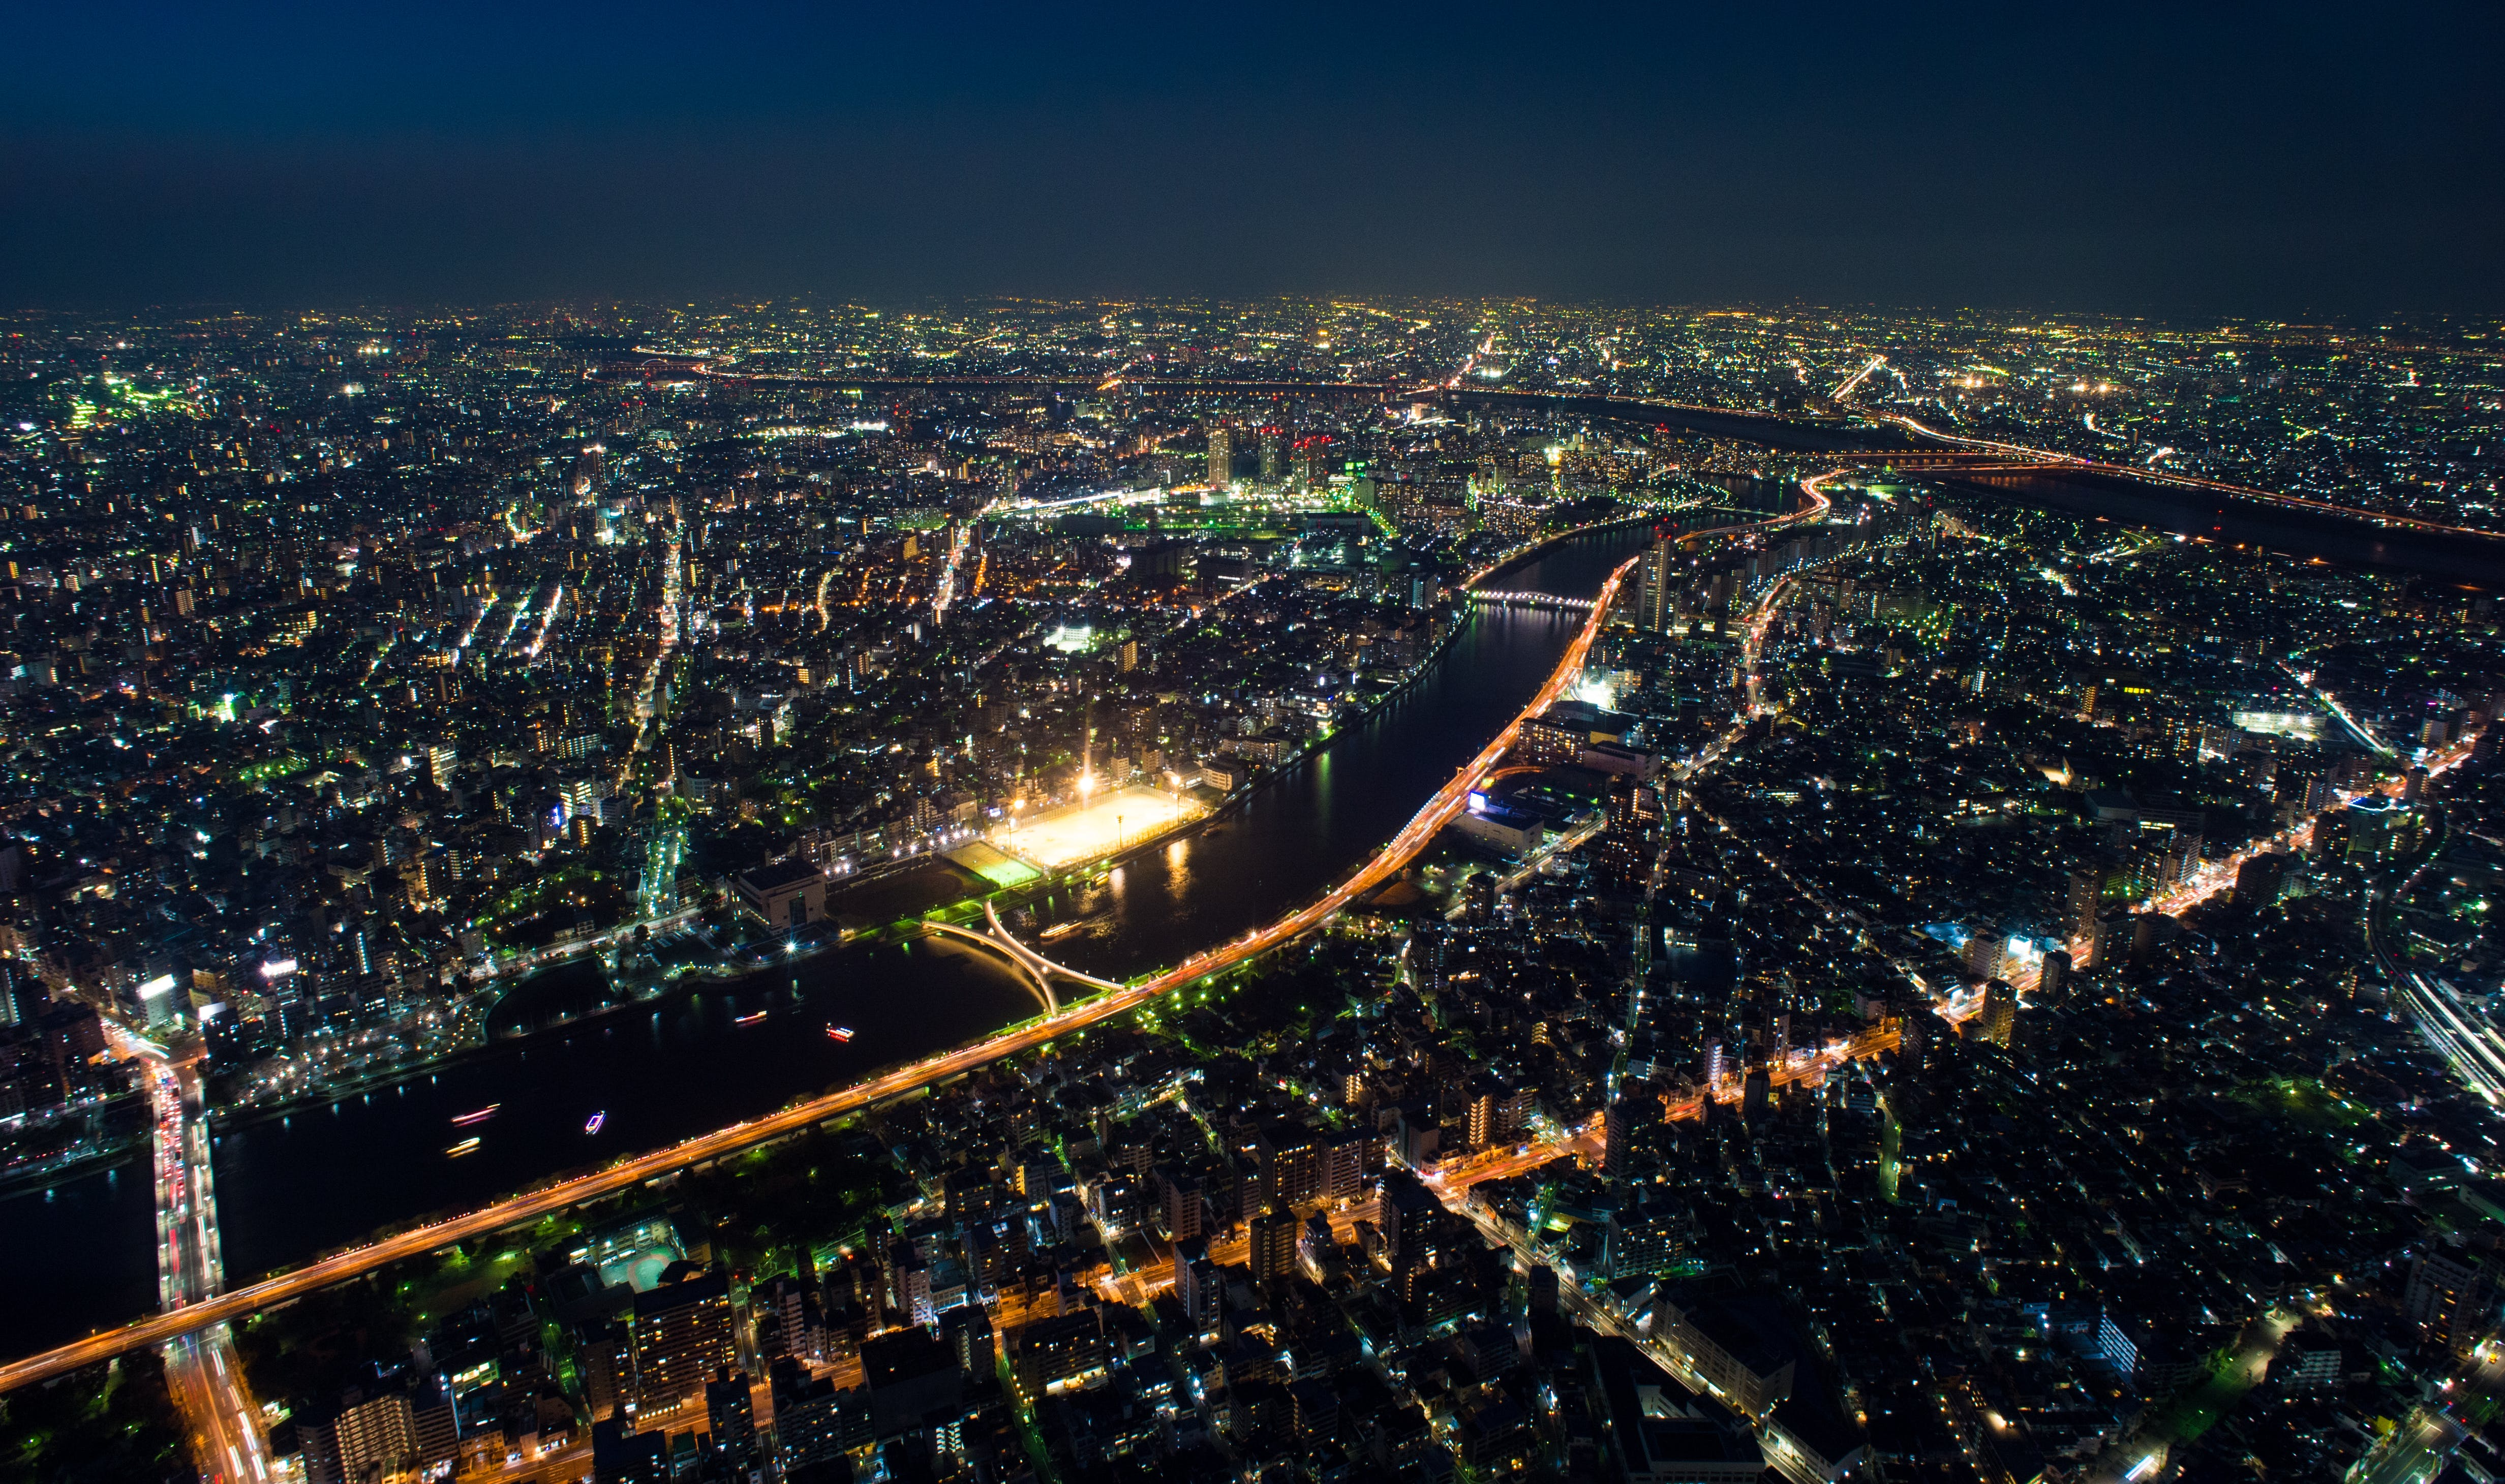 Bird's-eye View Photography of City Buildings